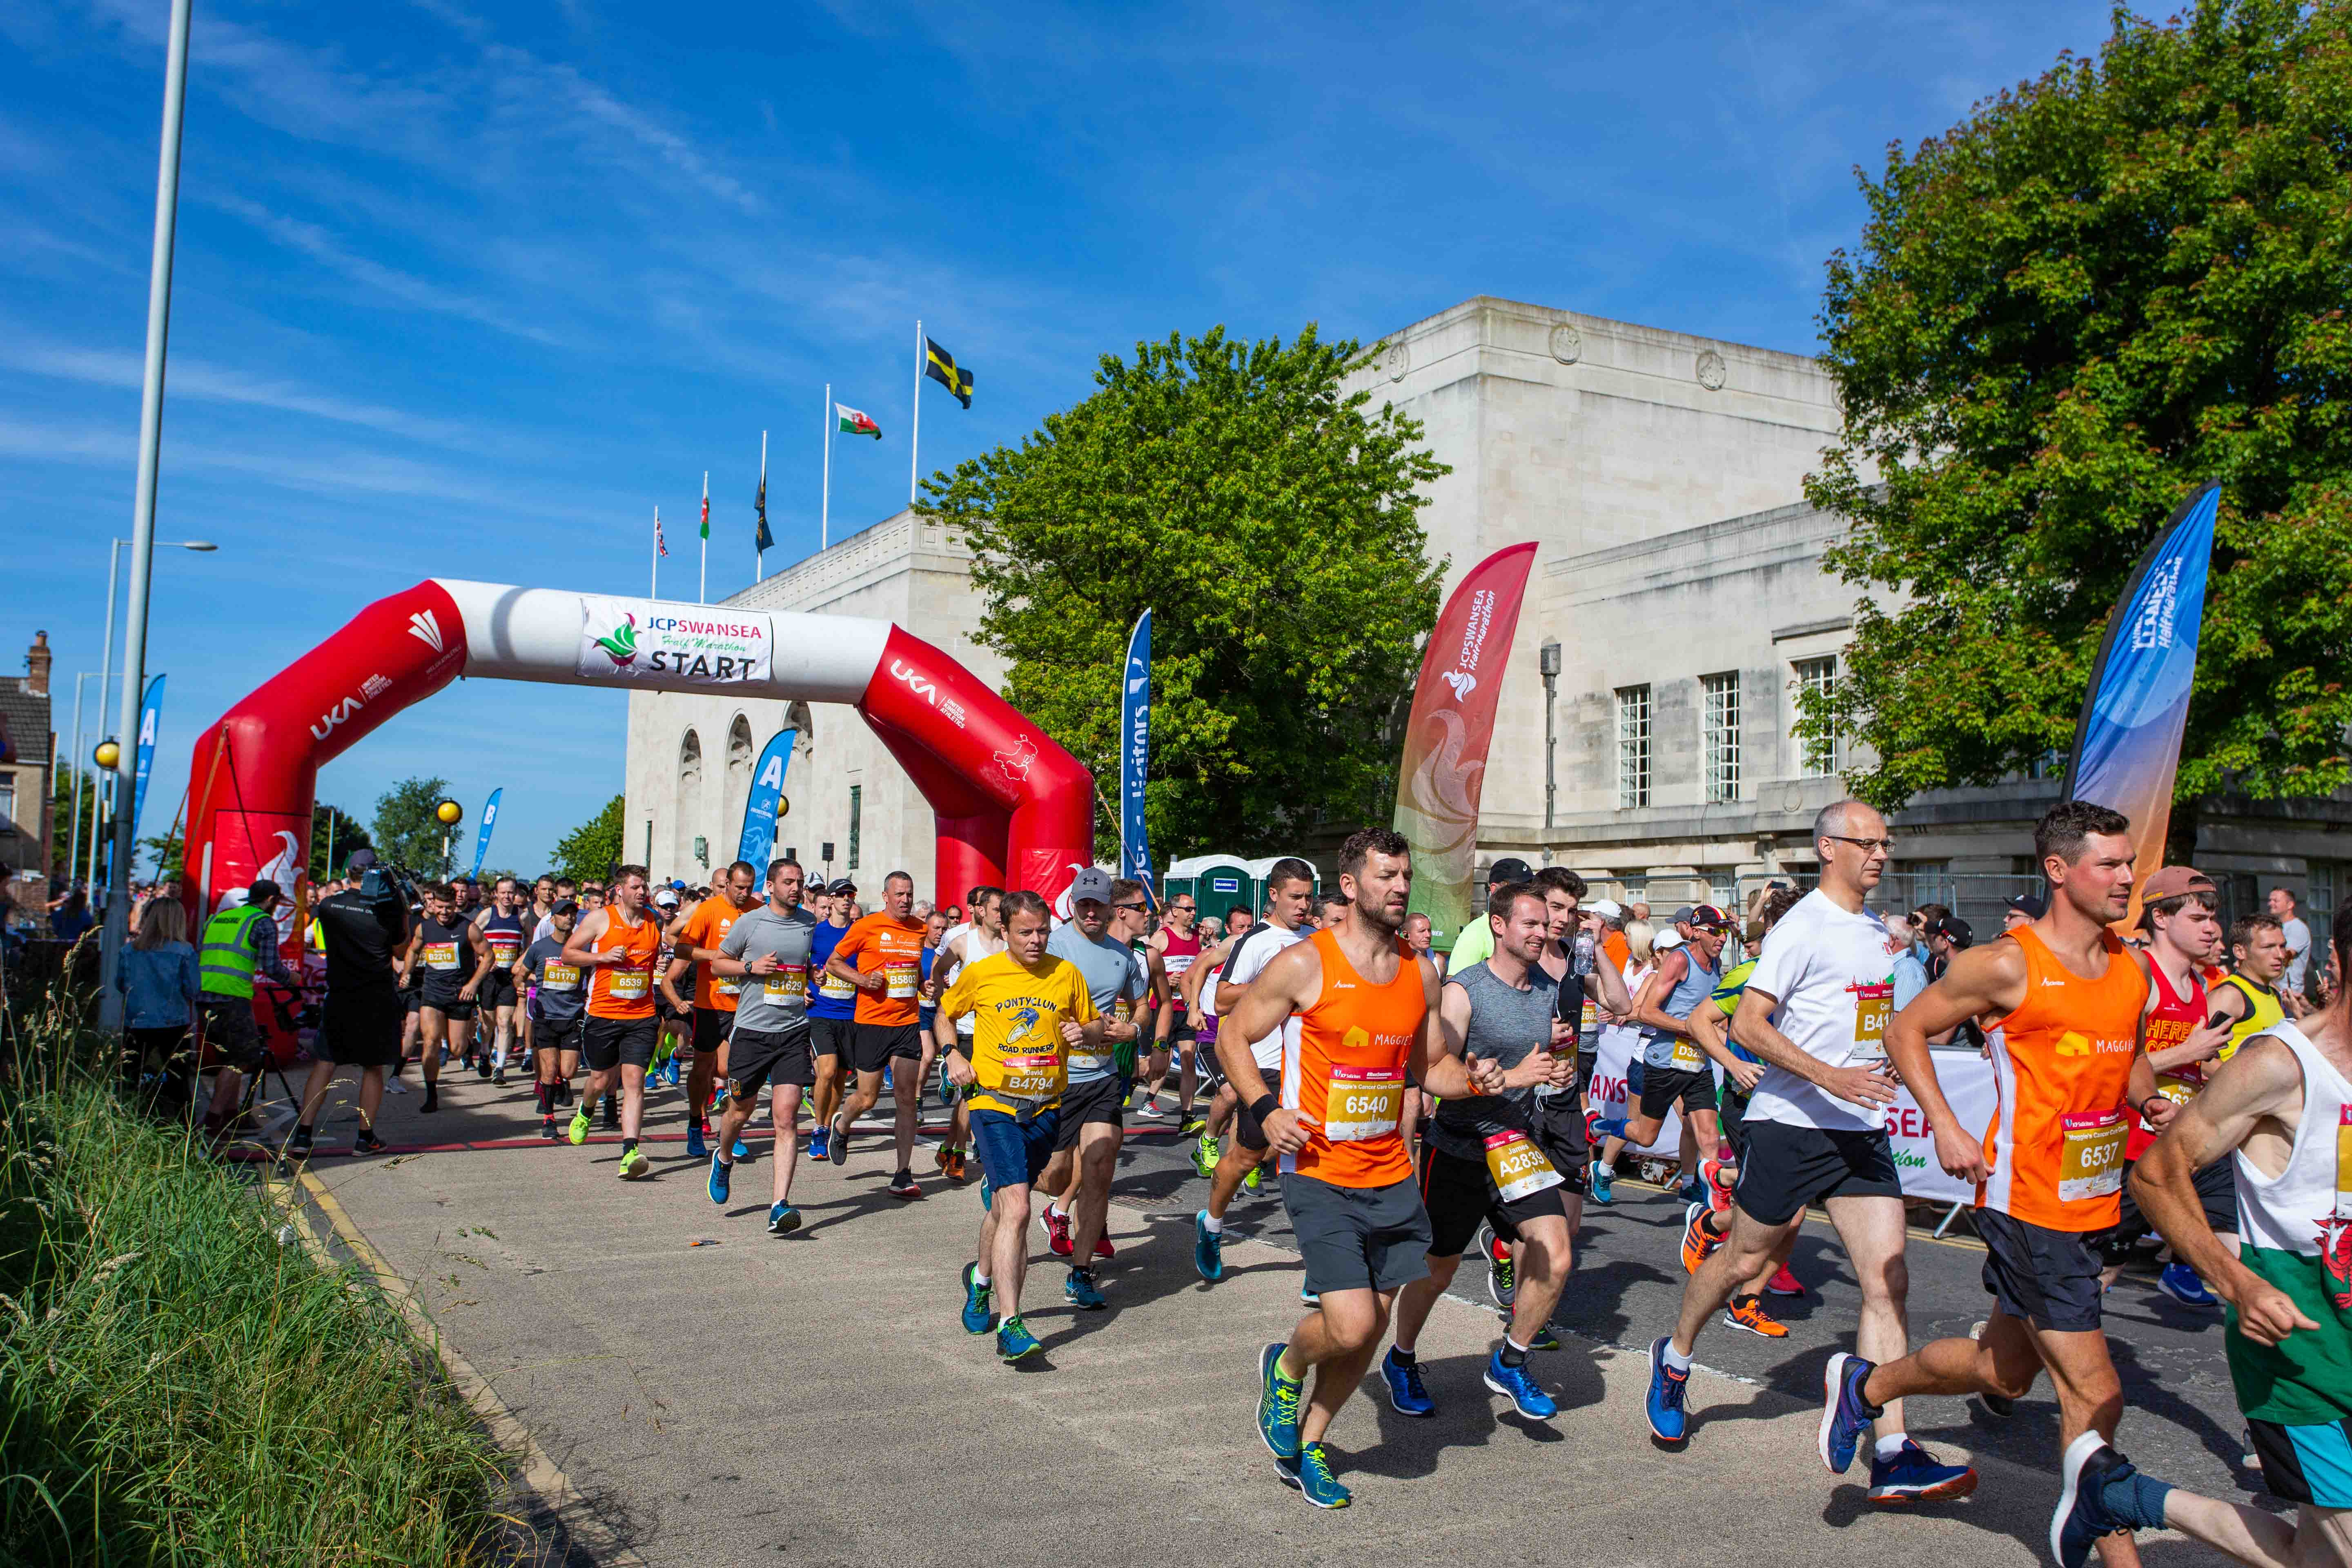 Maggie's Swansea Partners Up With The JCP Swansea Half Marathon For A Second Year…